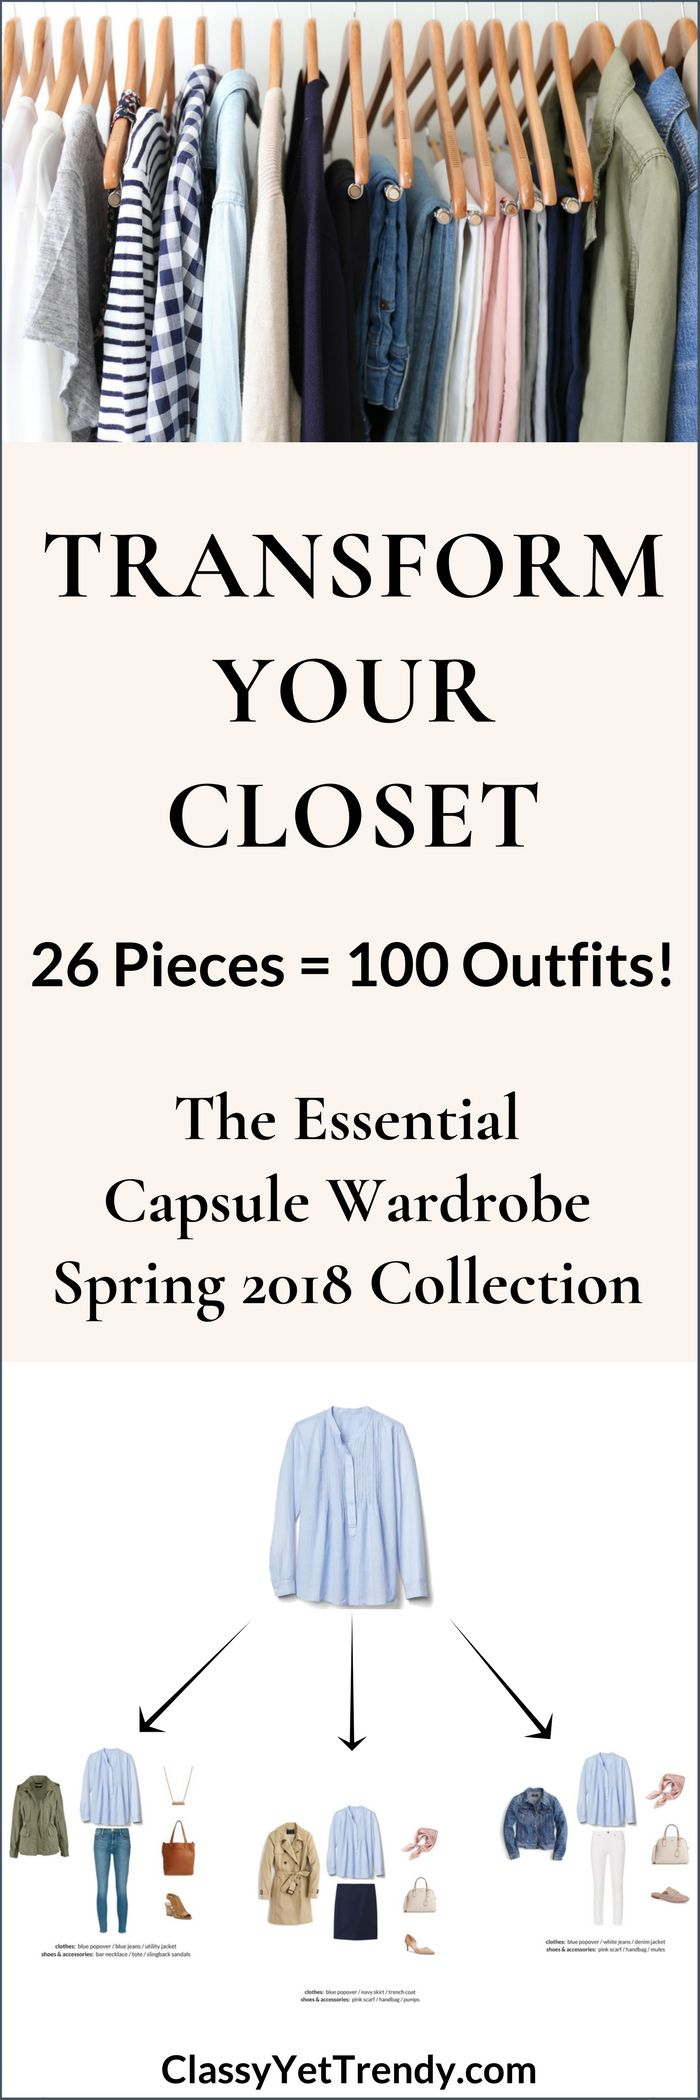 The Essential Capsule Wardrobe: Spring 2018 Collection - Transform your closet, get dressed quickly and get 100 outfits from only 26 clothes and shoes! A Complete Capsule Wardrobe Guide, using a striped top, white tee, popover, shirt, cardigan, utility jacket, denim jacket, trench coat, jeans, pants, skirt, pumps, flats, booties and sneakers.